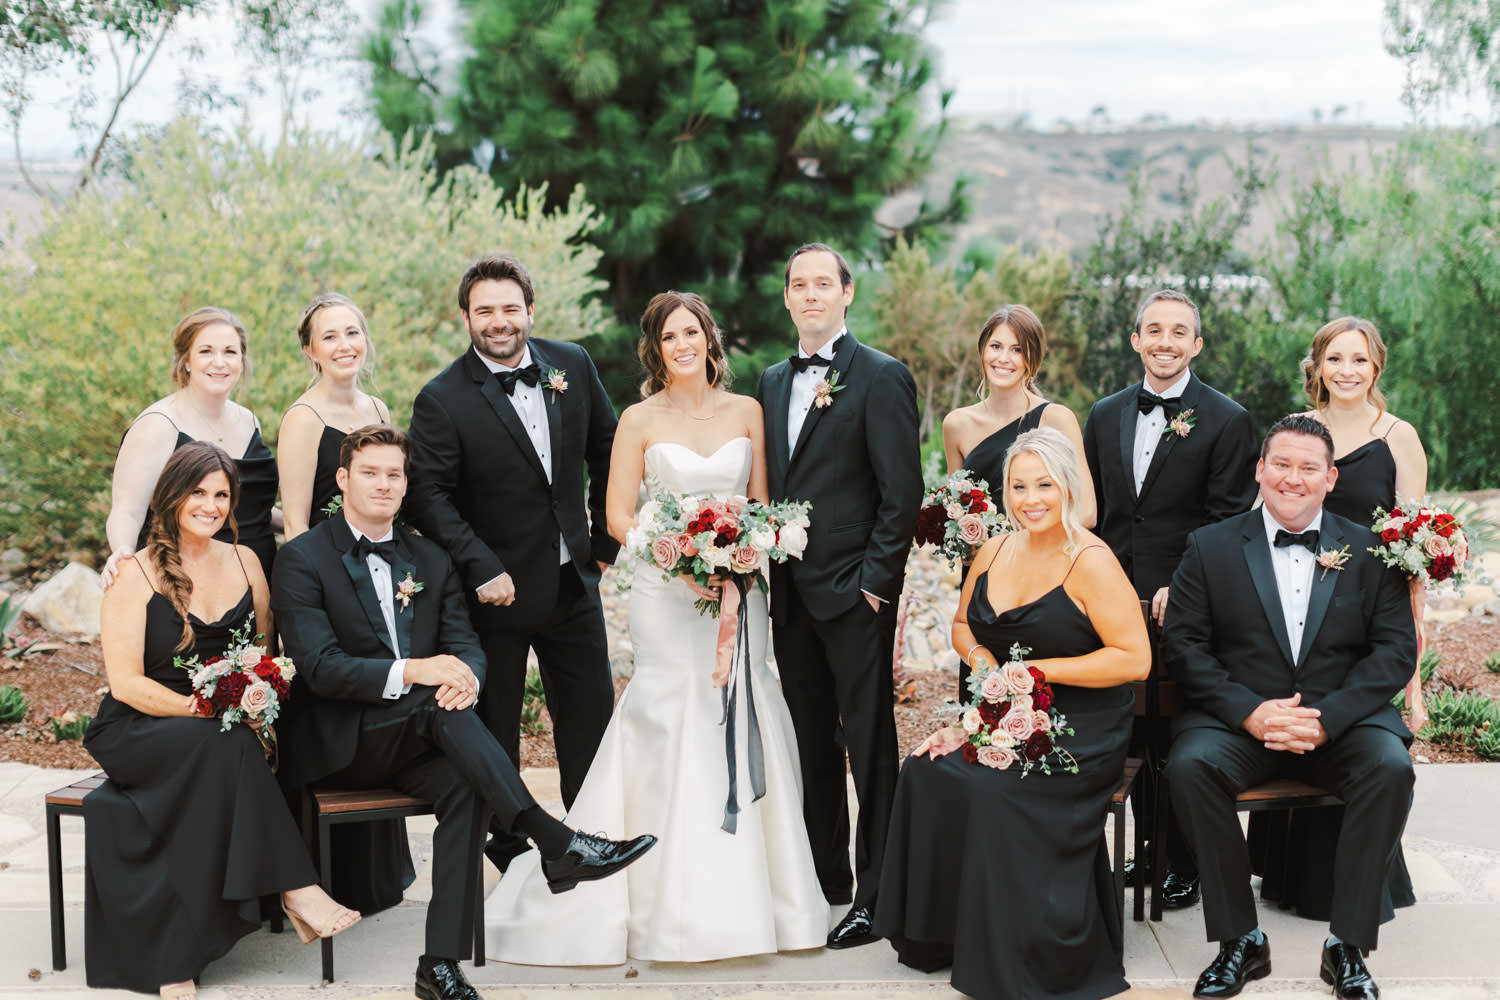 Bride in Anne Barge sweetheart gown with red ivory and mauve bouquet and bridesmaids in black dresses with groomsmen in black tuxes at Green Acre Campus Pointe Wedding, photo by Cavin Elizabeth Photography